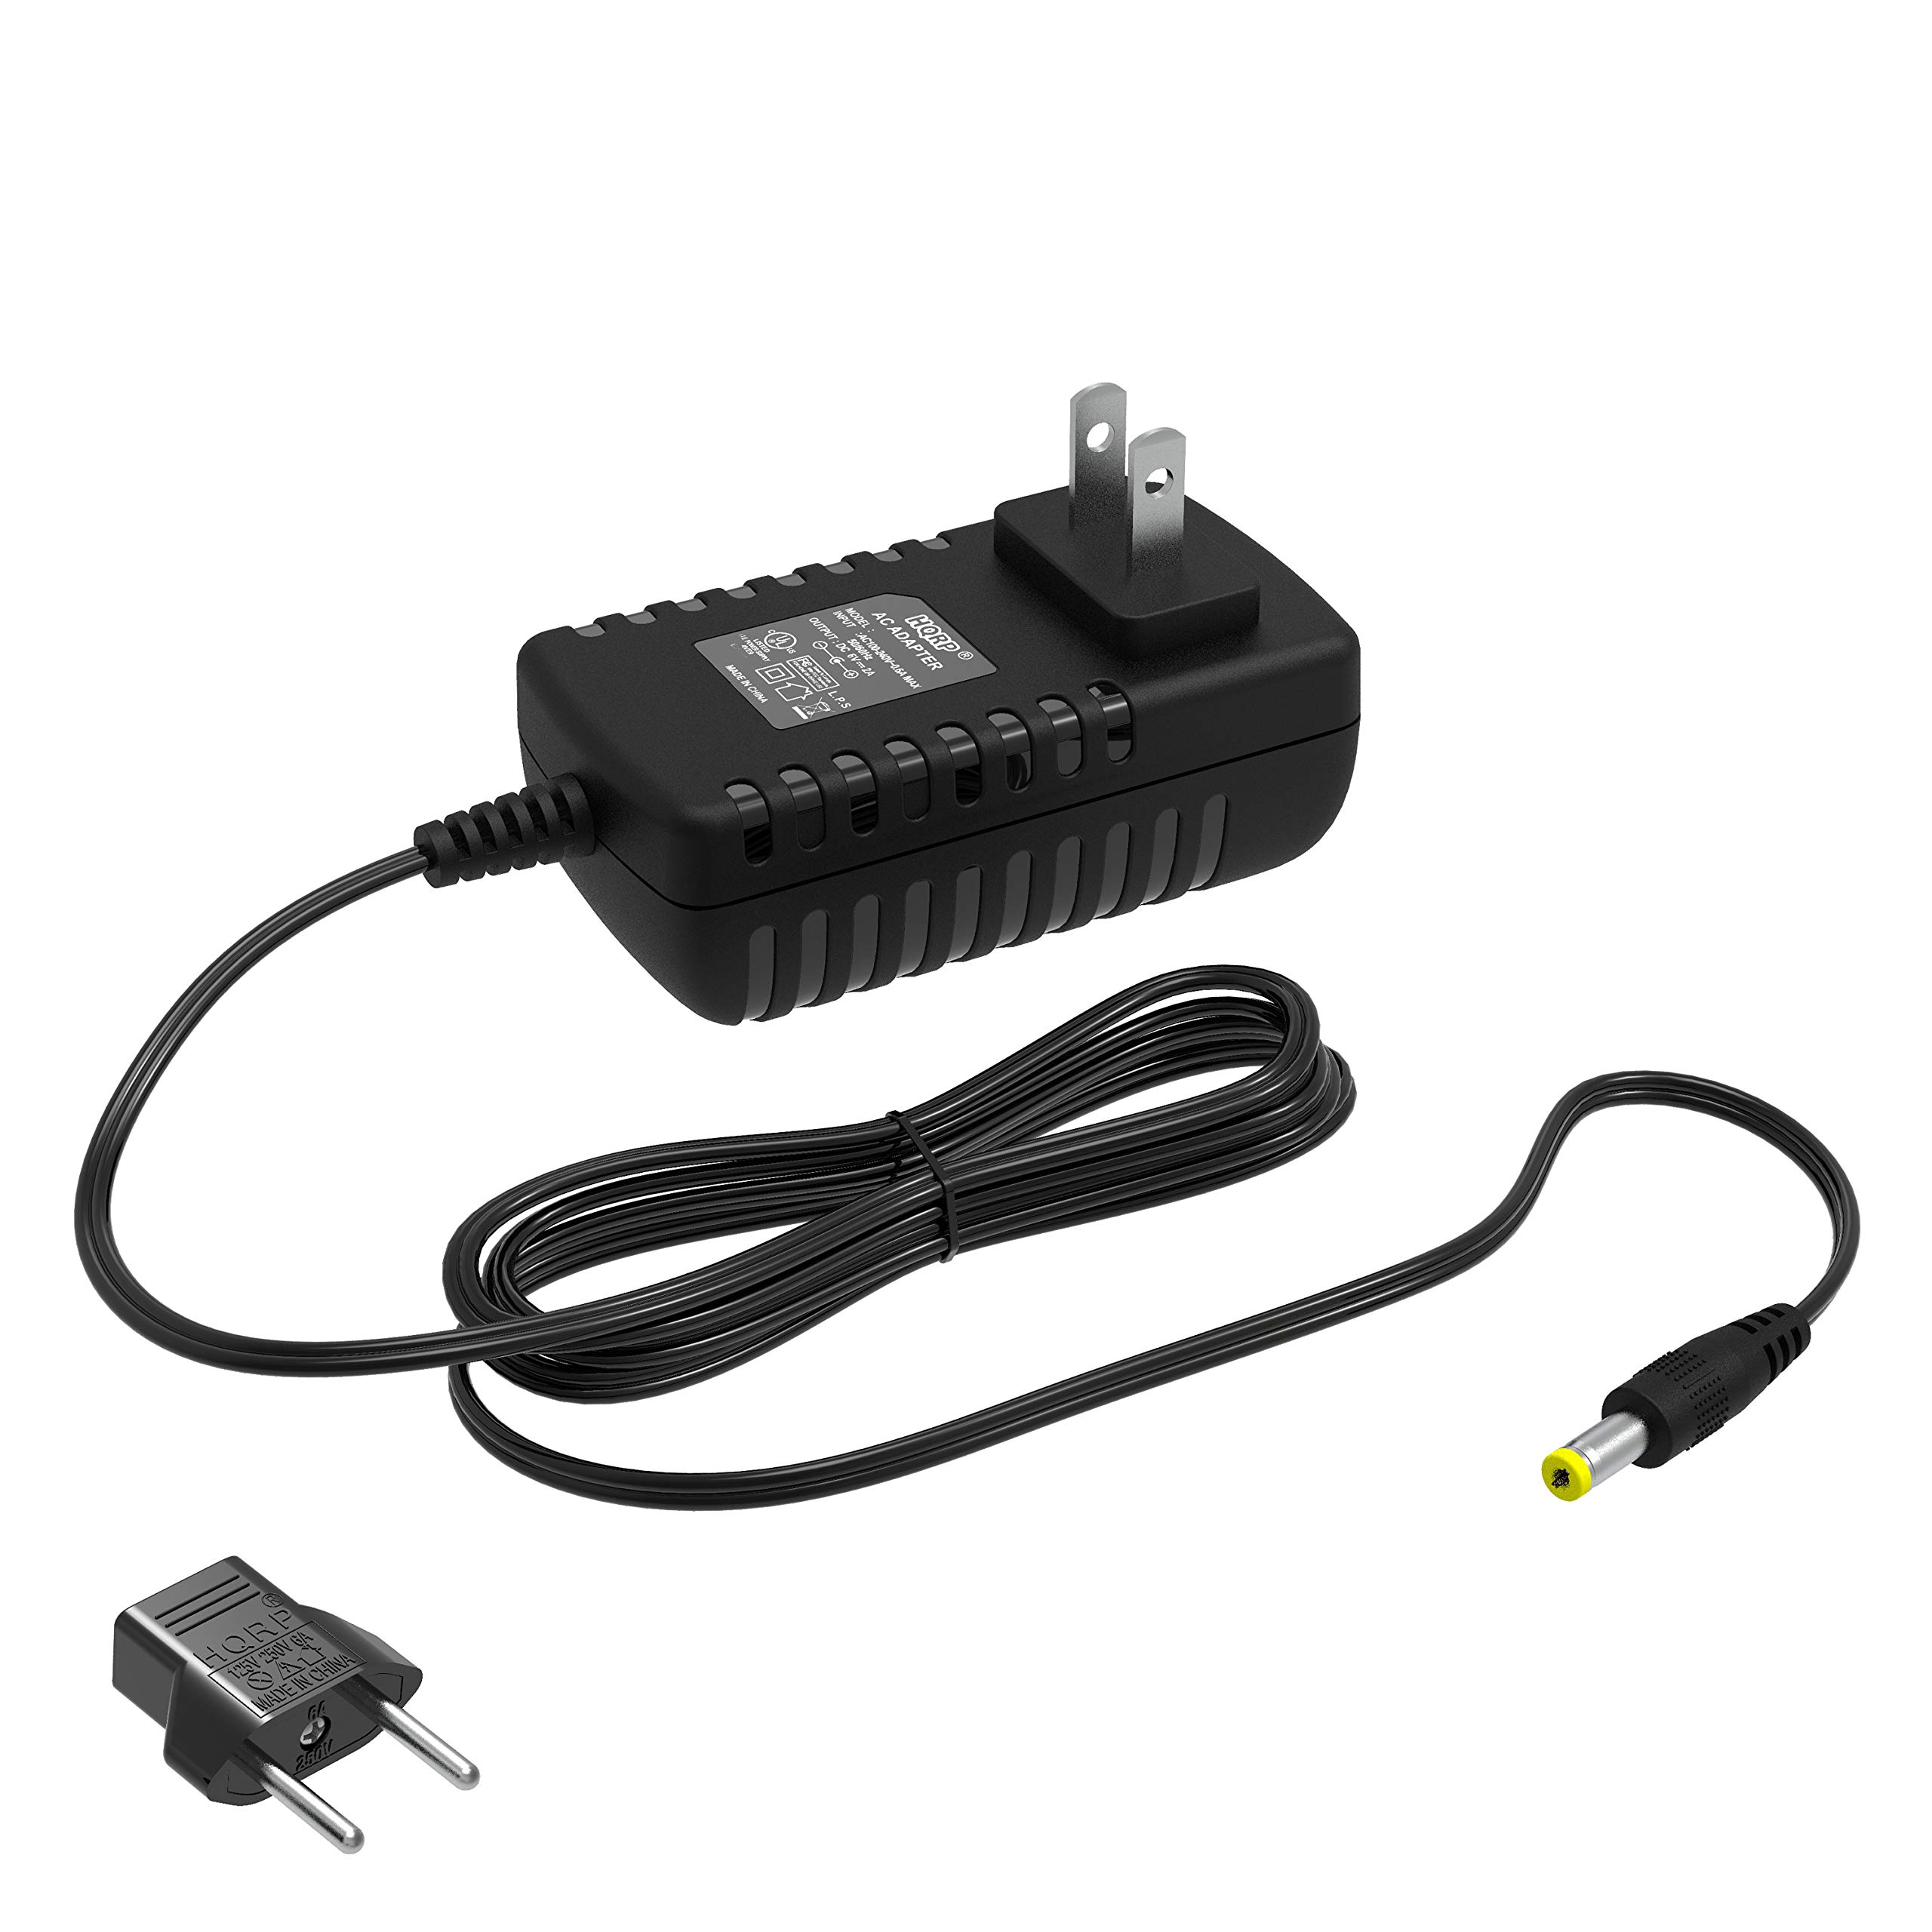 AC Adapter for ProForm XP 160 Elliptical Exerciser PFEL89470 Power Supply Cord